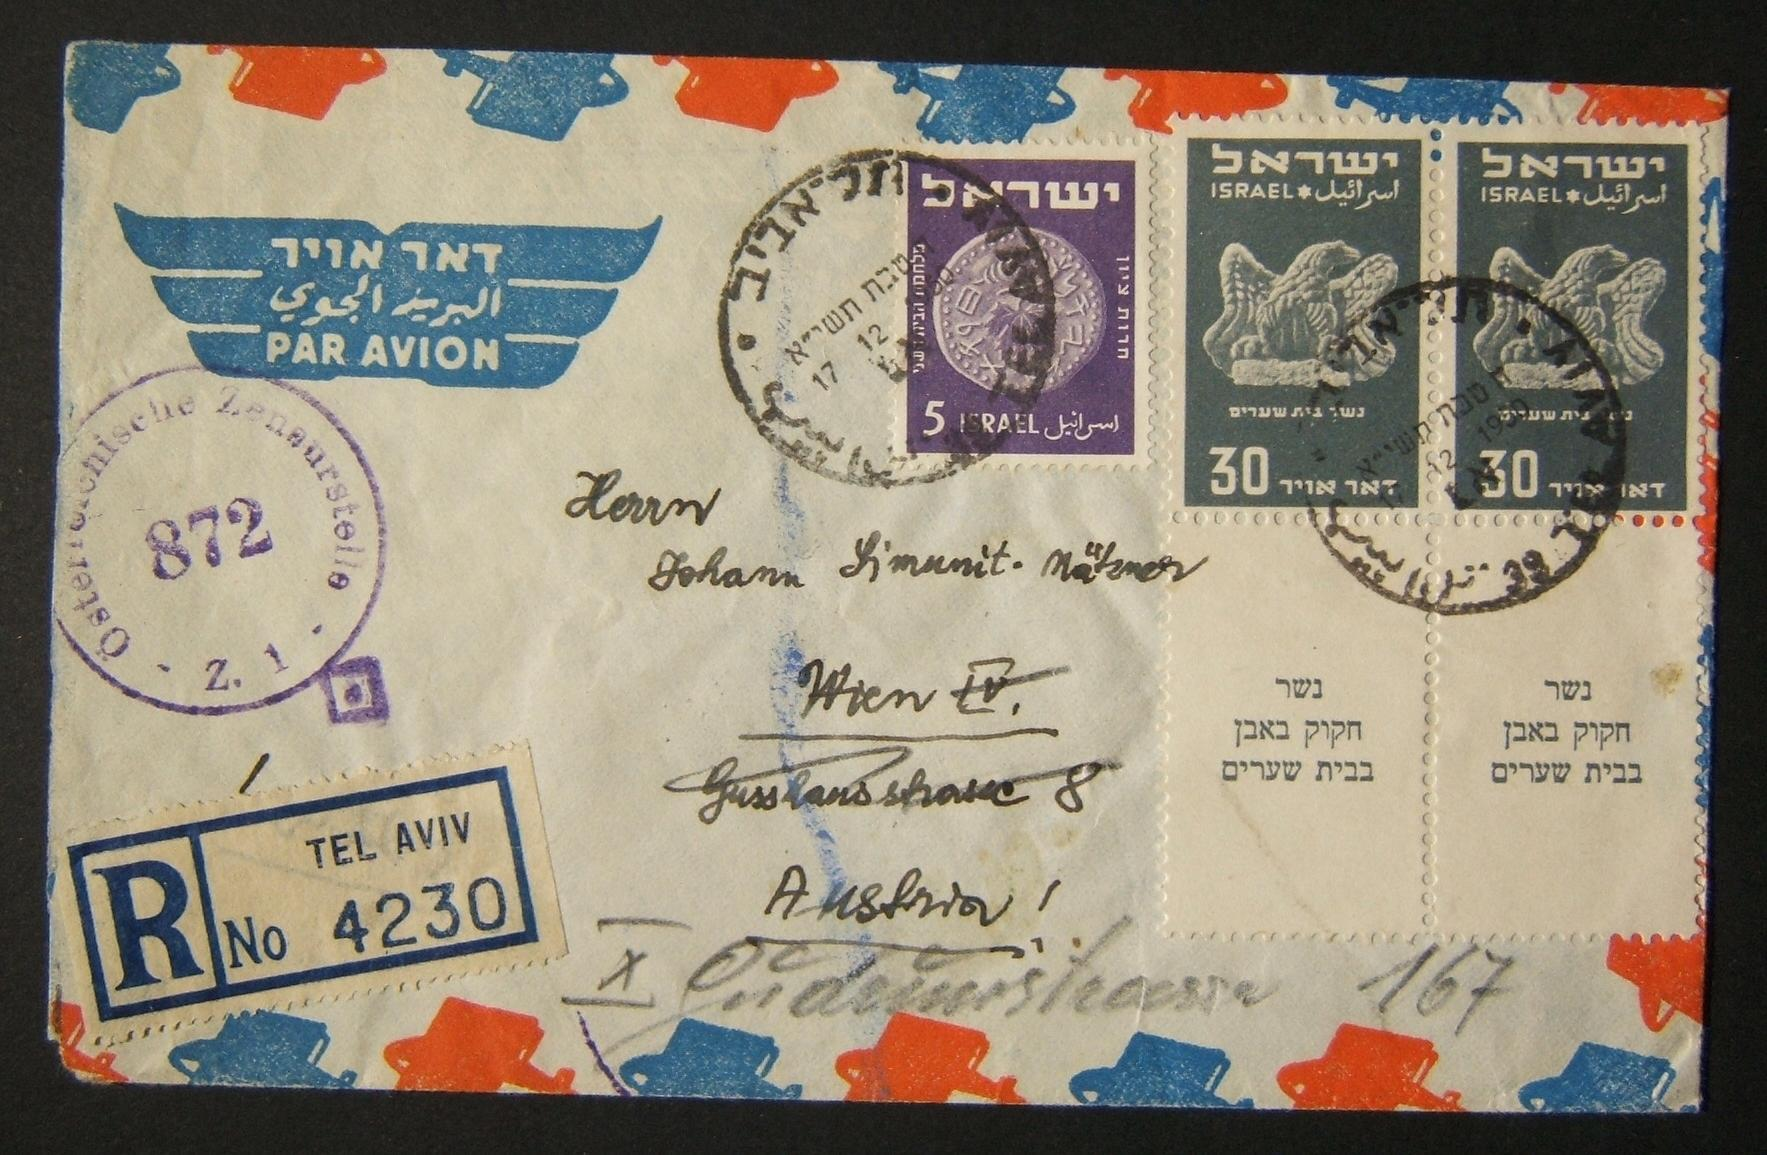 1950 1st airmail / PO's, rates & routes: 17-12-1950